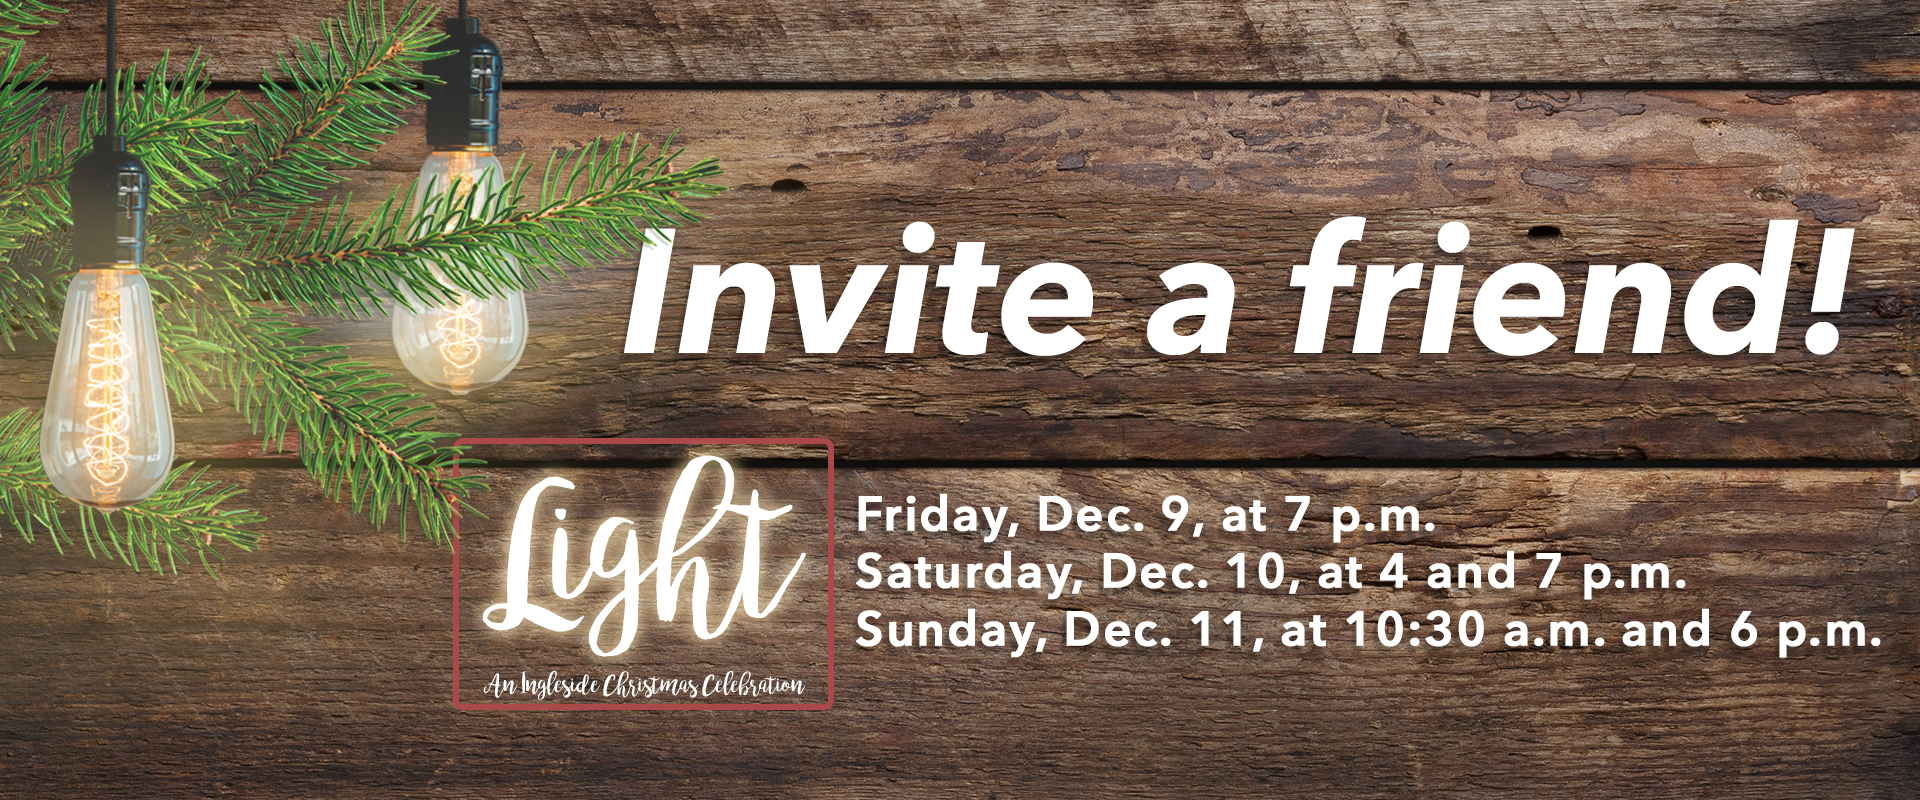 Invite a Friend to Celebrate Christmas | Pastor's Blog